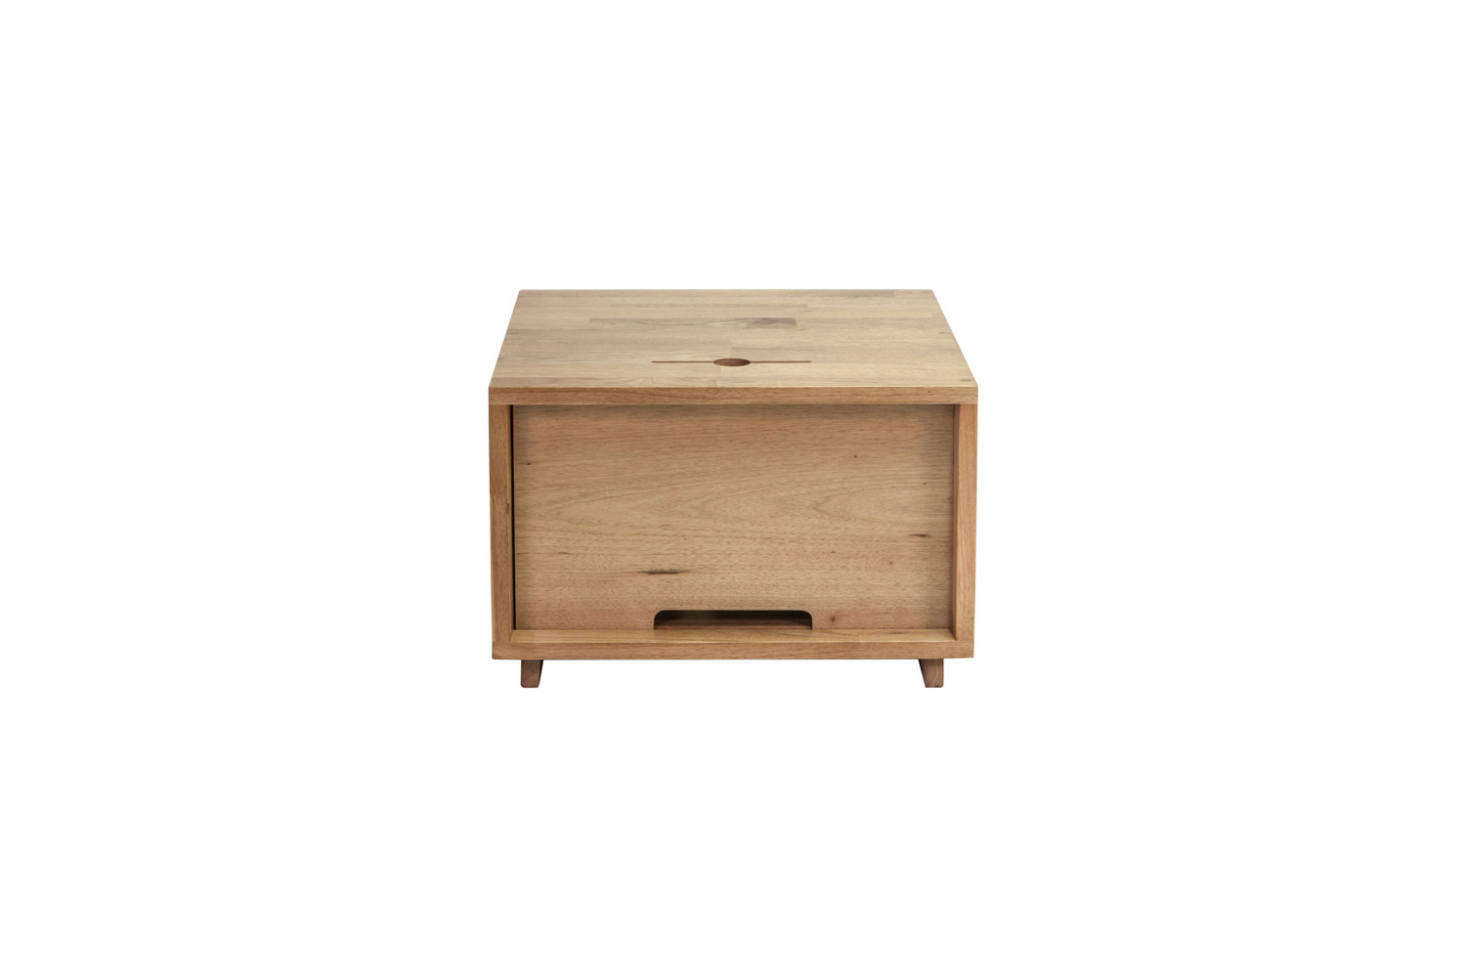 10 easy pieces modern wood bedside tables remodelista the mash studios lax series night table in english walnut with a natural oil finish is watchthetrailerfo